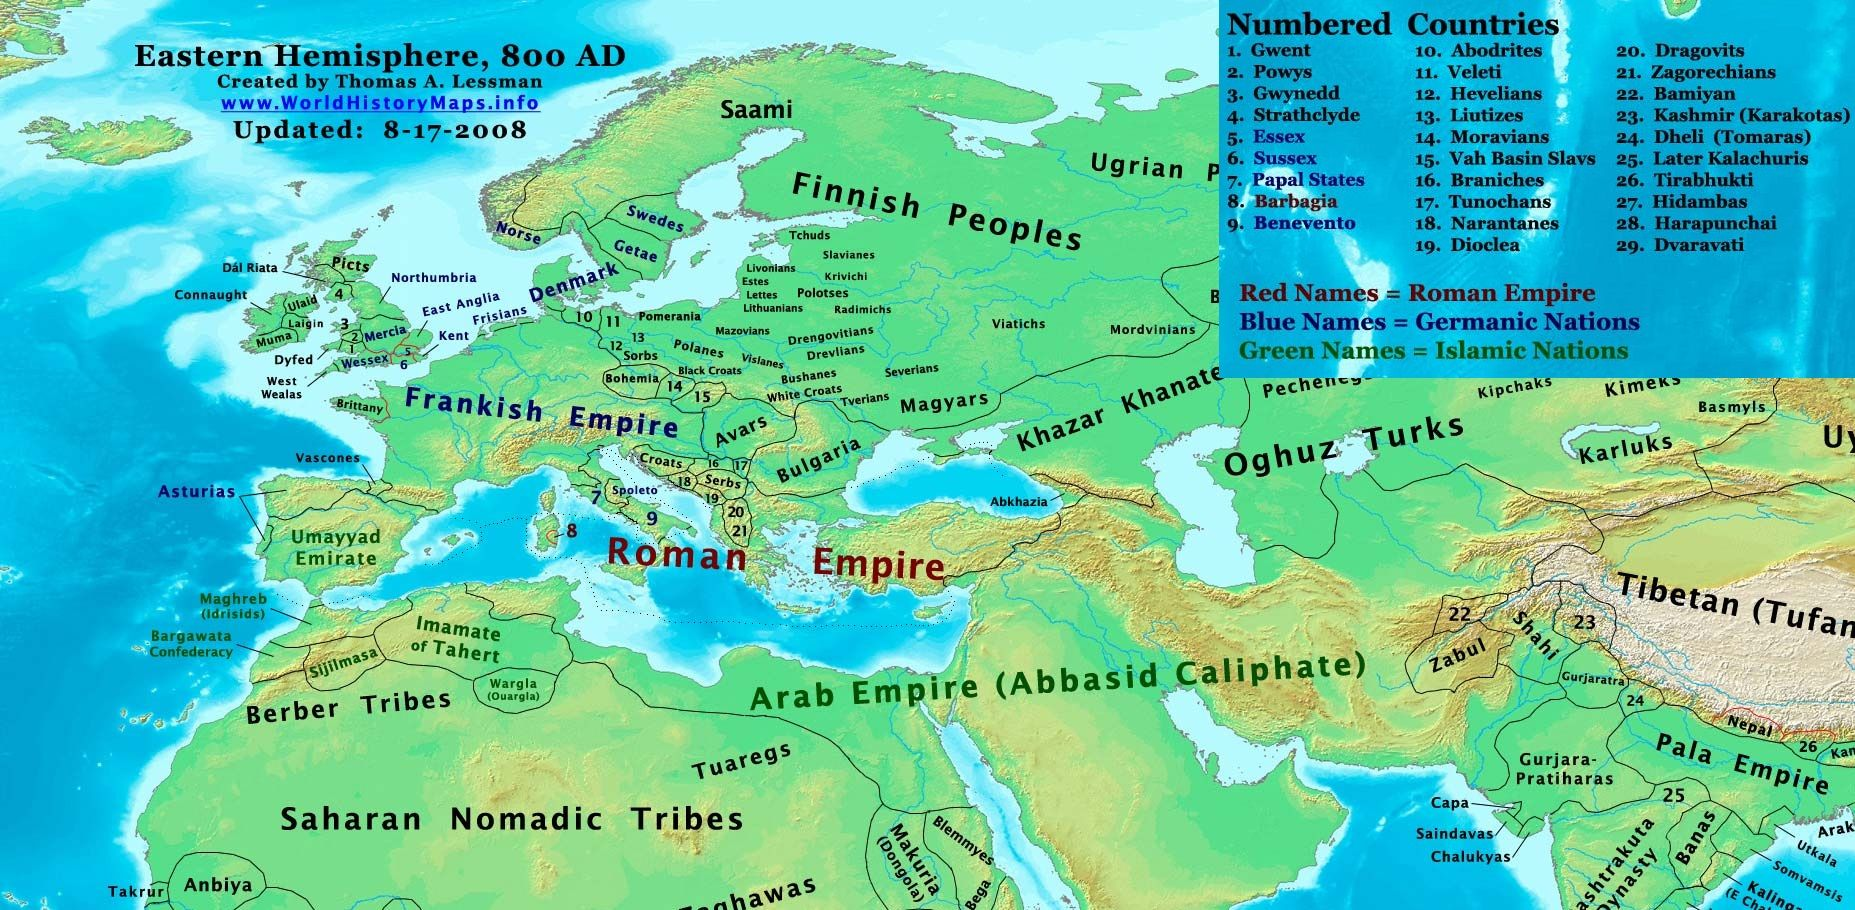 Europe and the near east 800ad worldhistorymaps infog 1855910 europe and the near east 800ad worldhistorymaps info gumiabroncs Choice Image